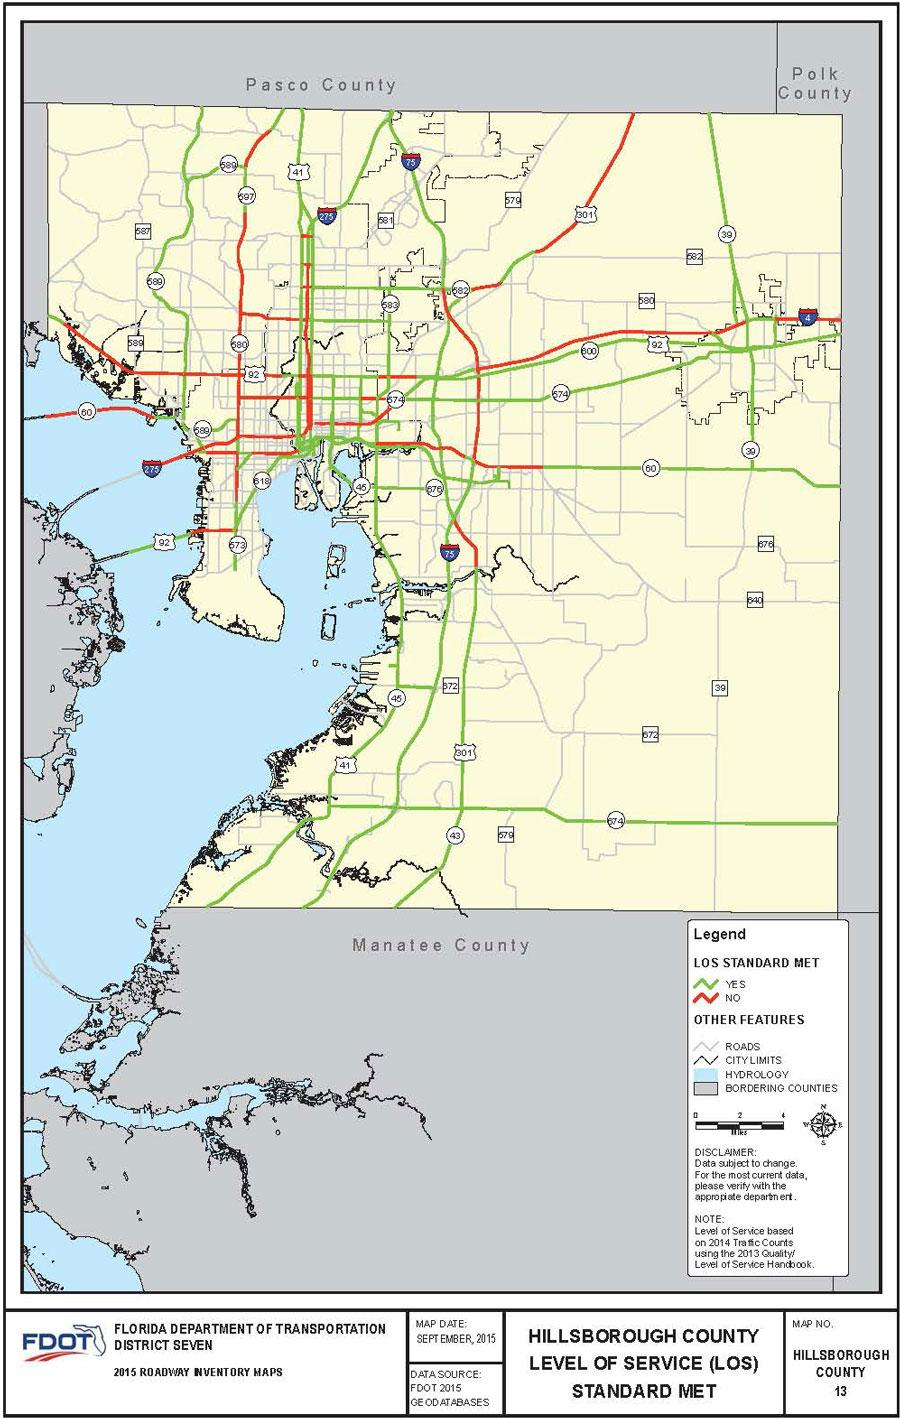 Tampa Traffic Map Here's what Tampa Bay traffic looks like according to FDOT   Tampa